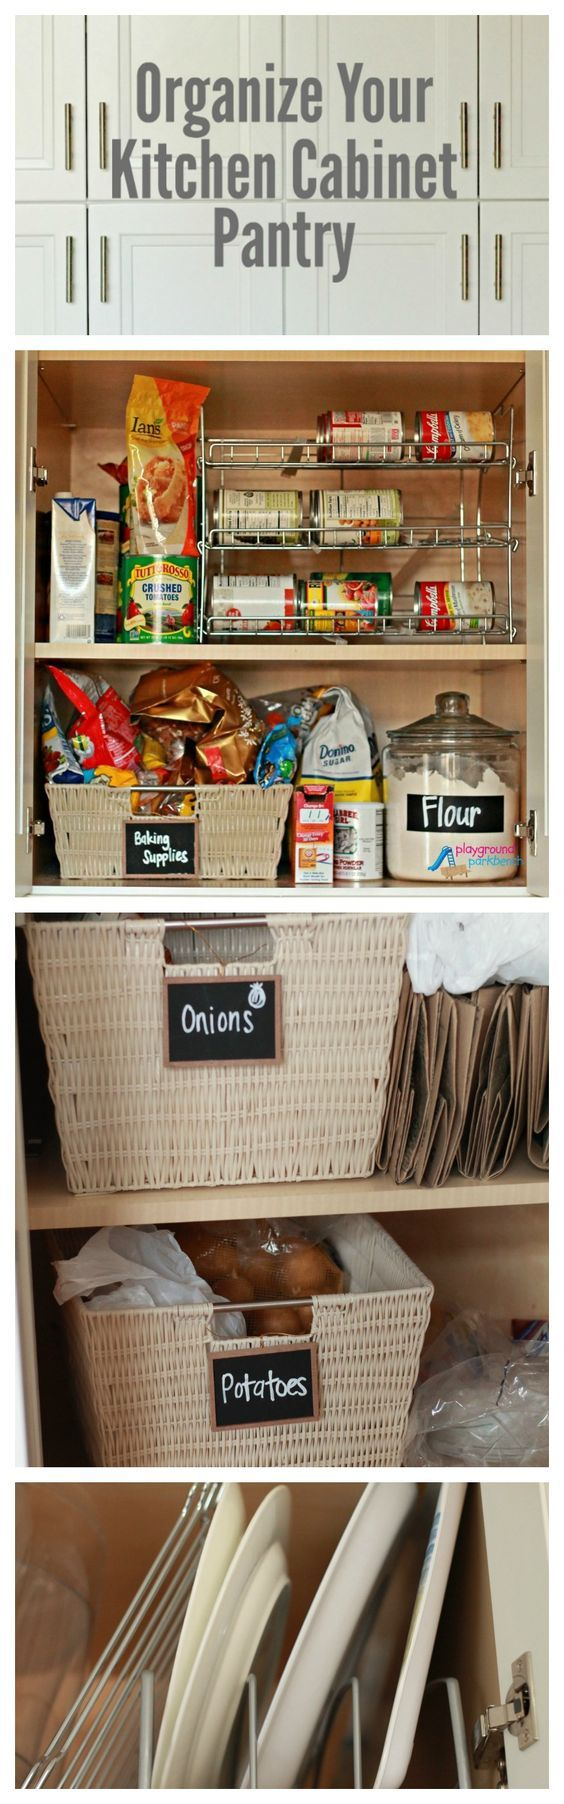 Organize Your Kitchen Cabinet Pantry - Tips and Tricks to Reduce Waste, Maximize Storage and Make it Look Pretty